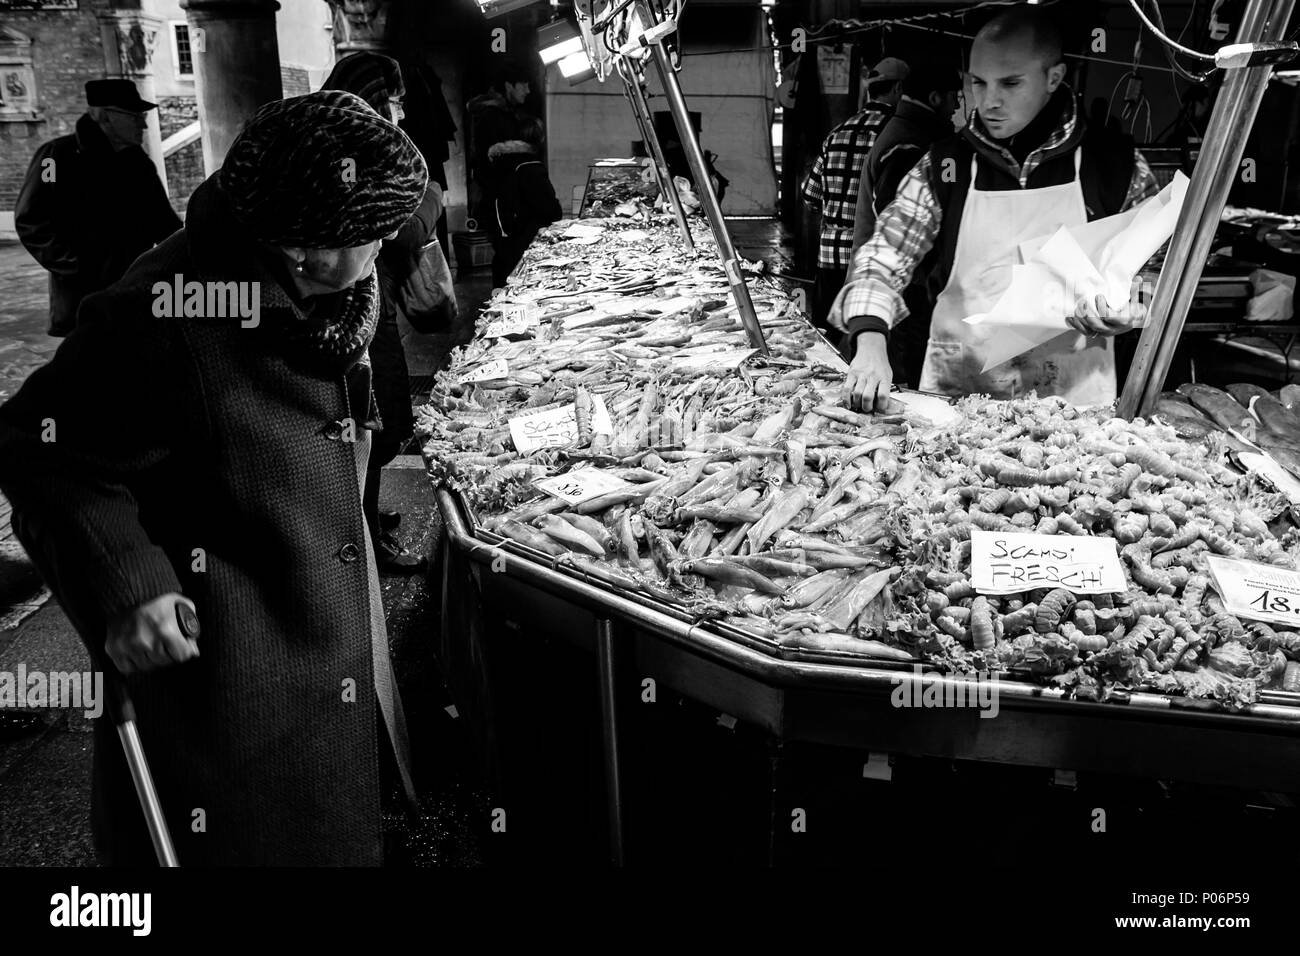 An Elderly Woman Buying Fresh Fish From The Market, Venice, Italy - Stock Image